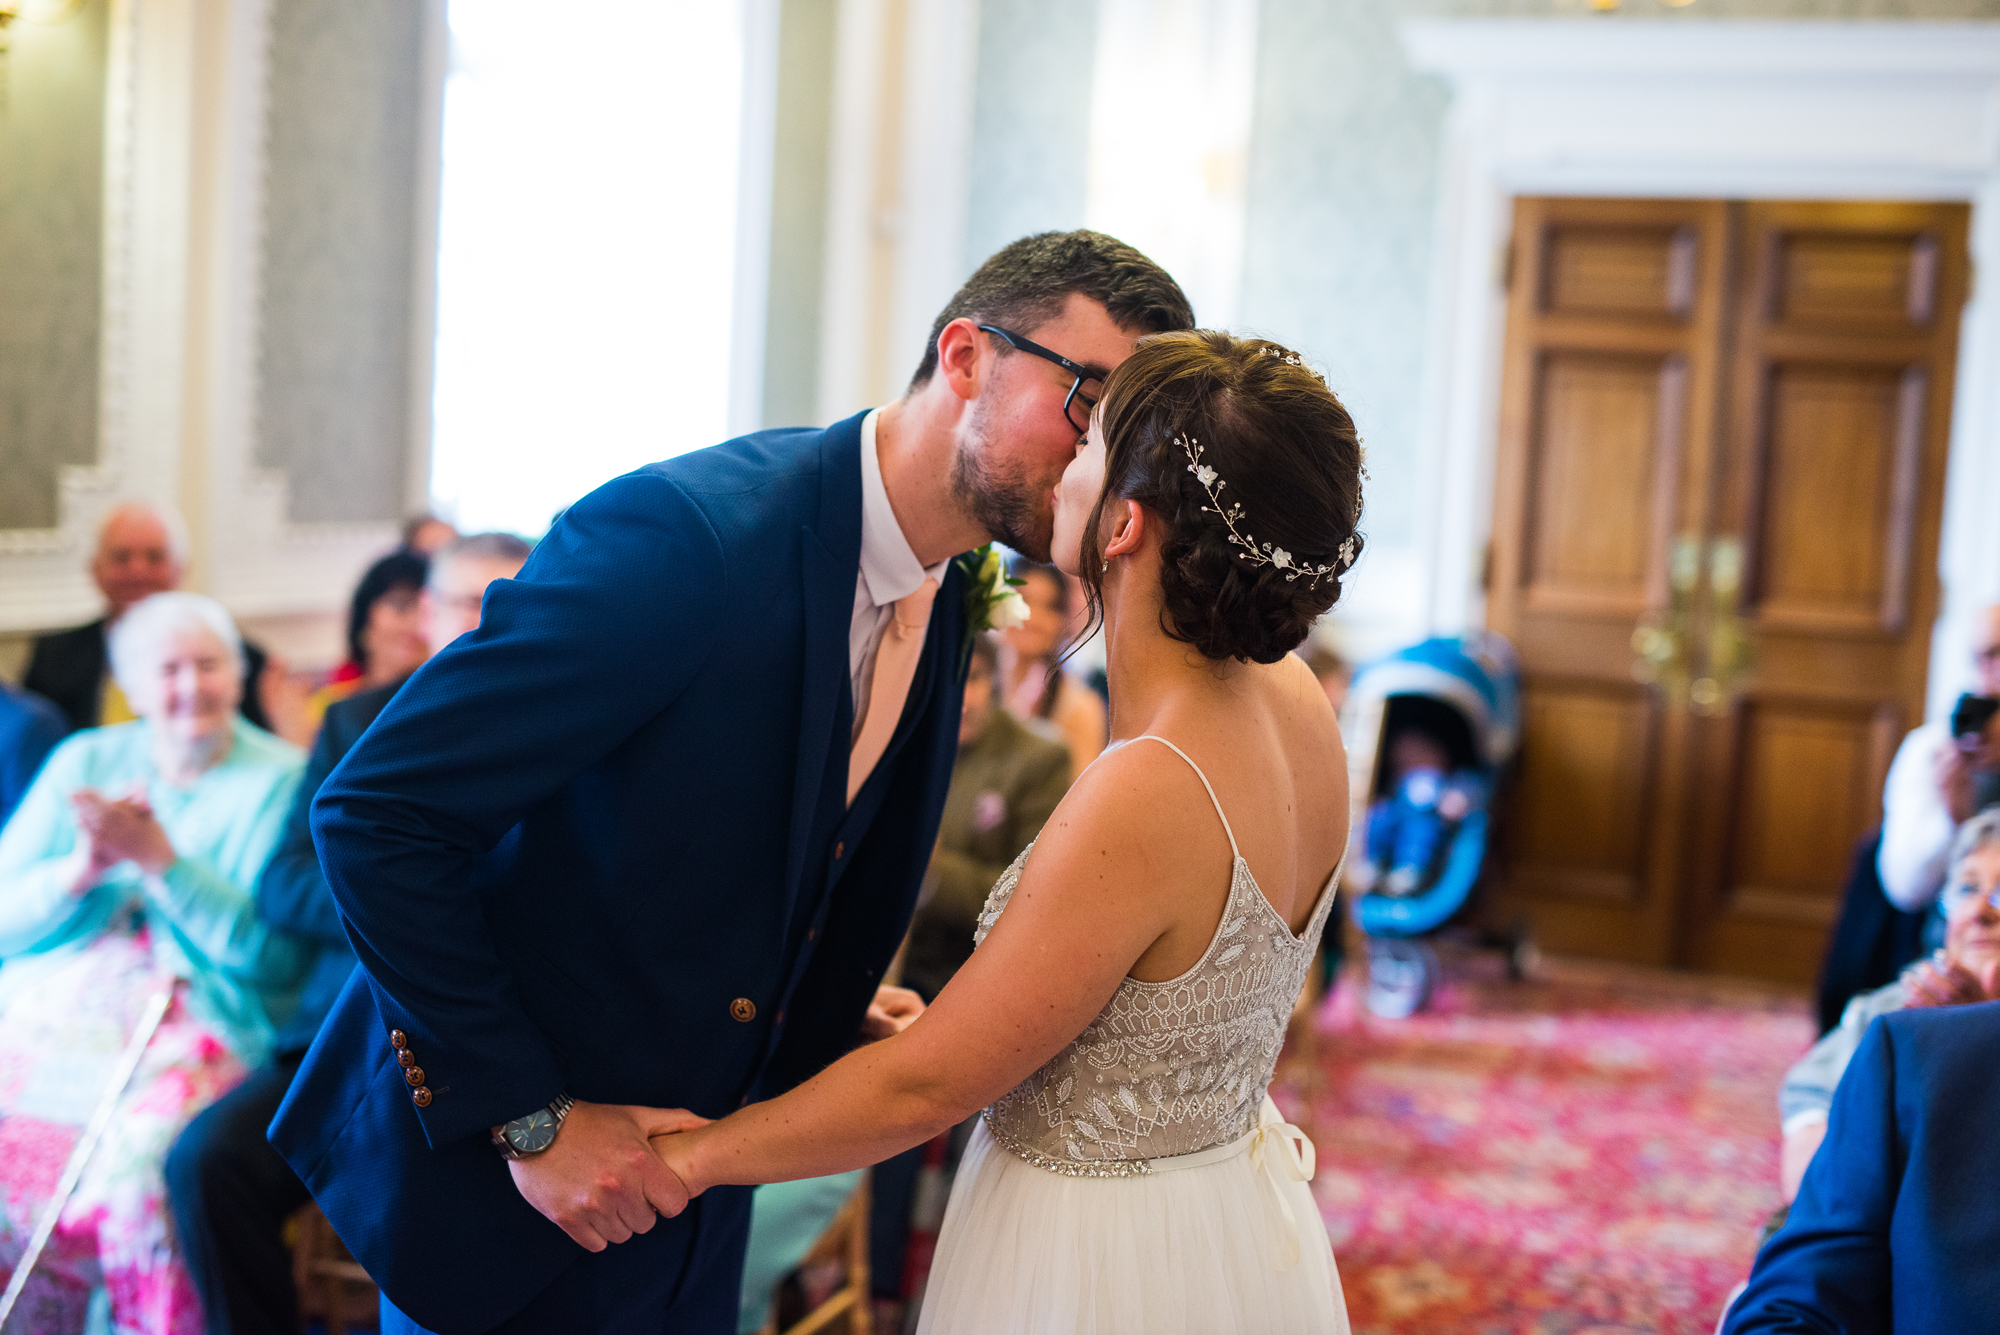 Crewe municipal building wedding12.jpg